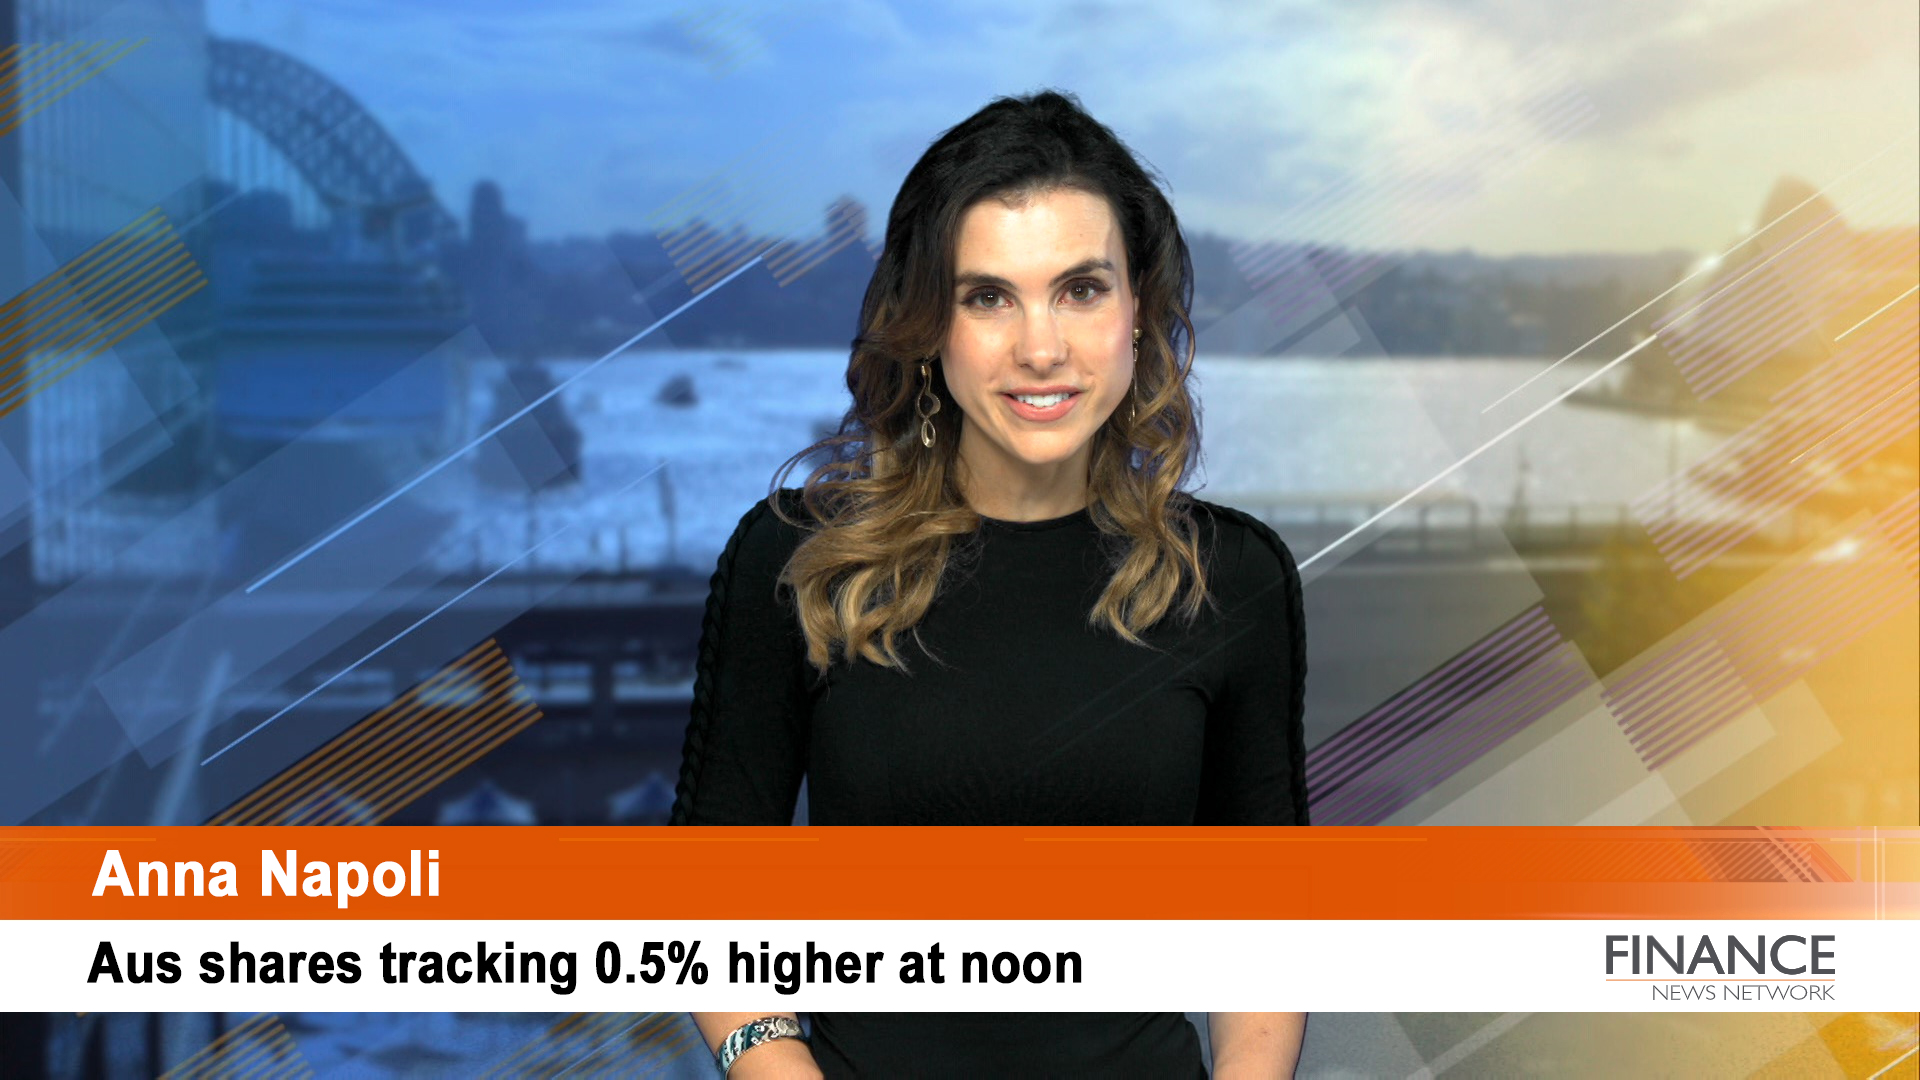 Housing prices surge: Aus shares 0.5% higher at noon